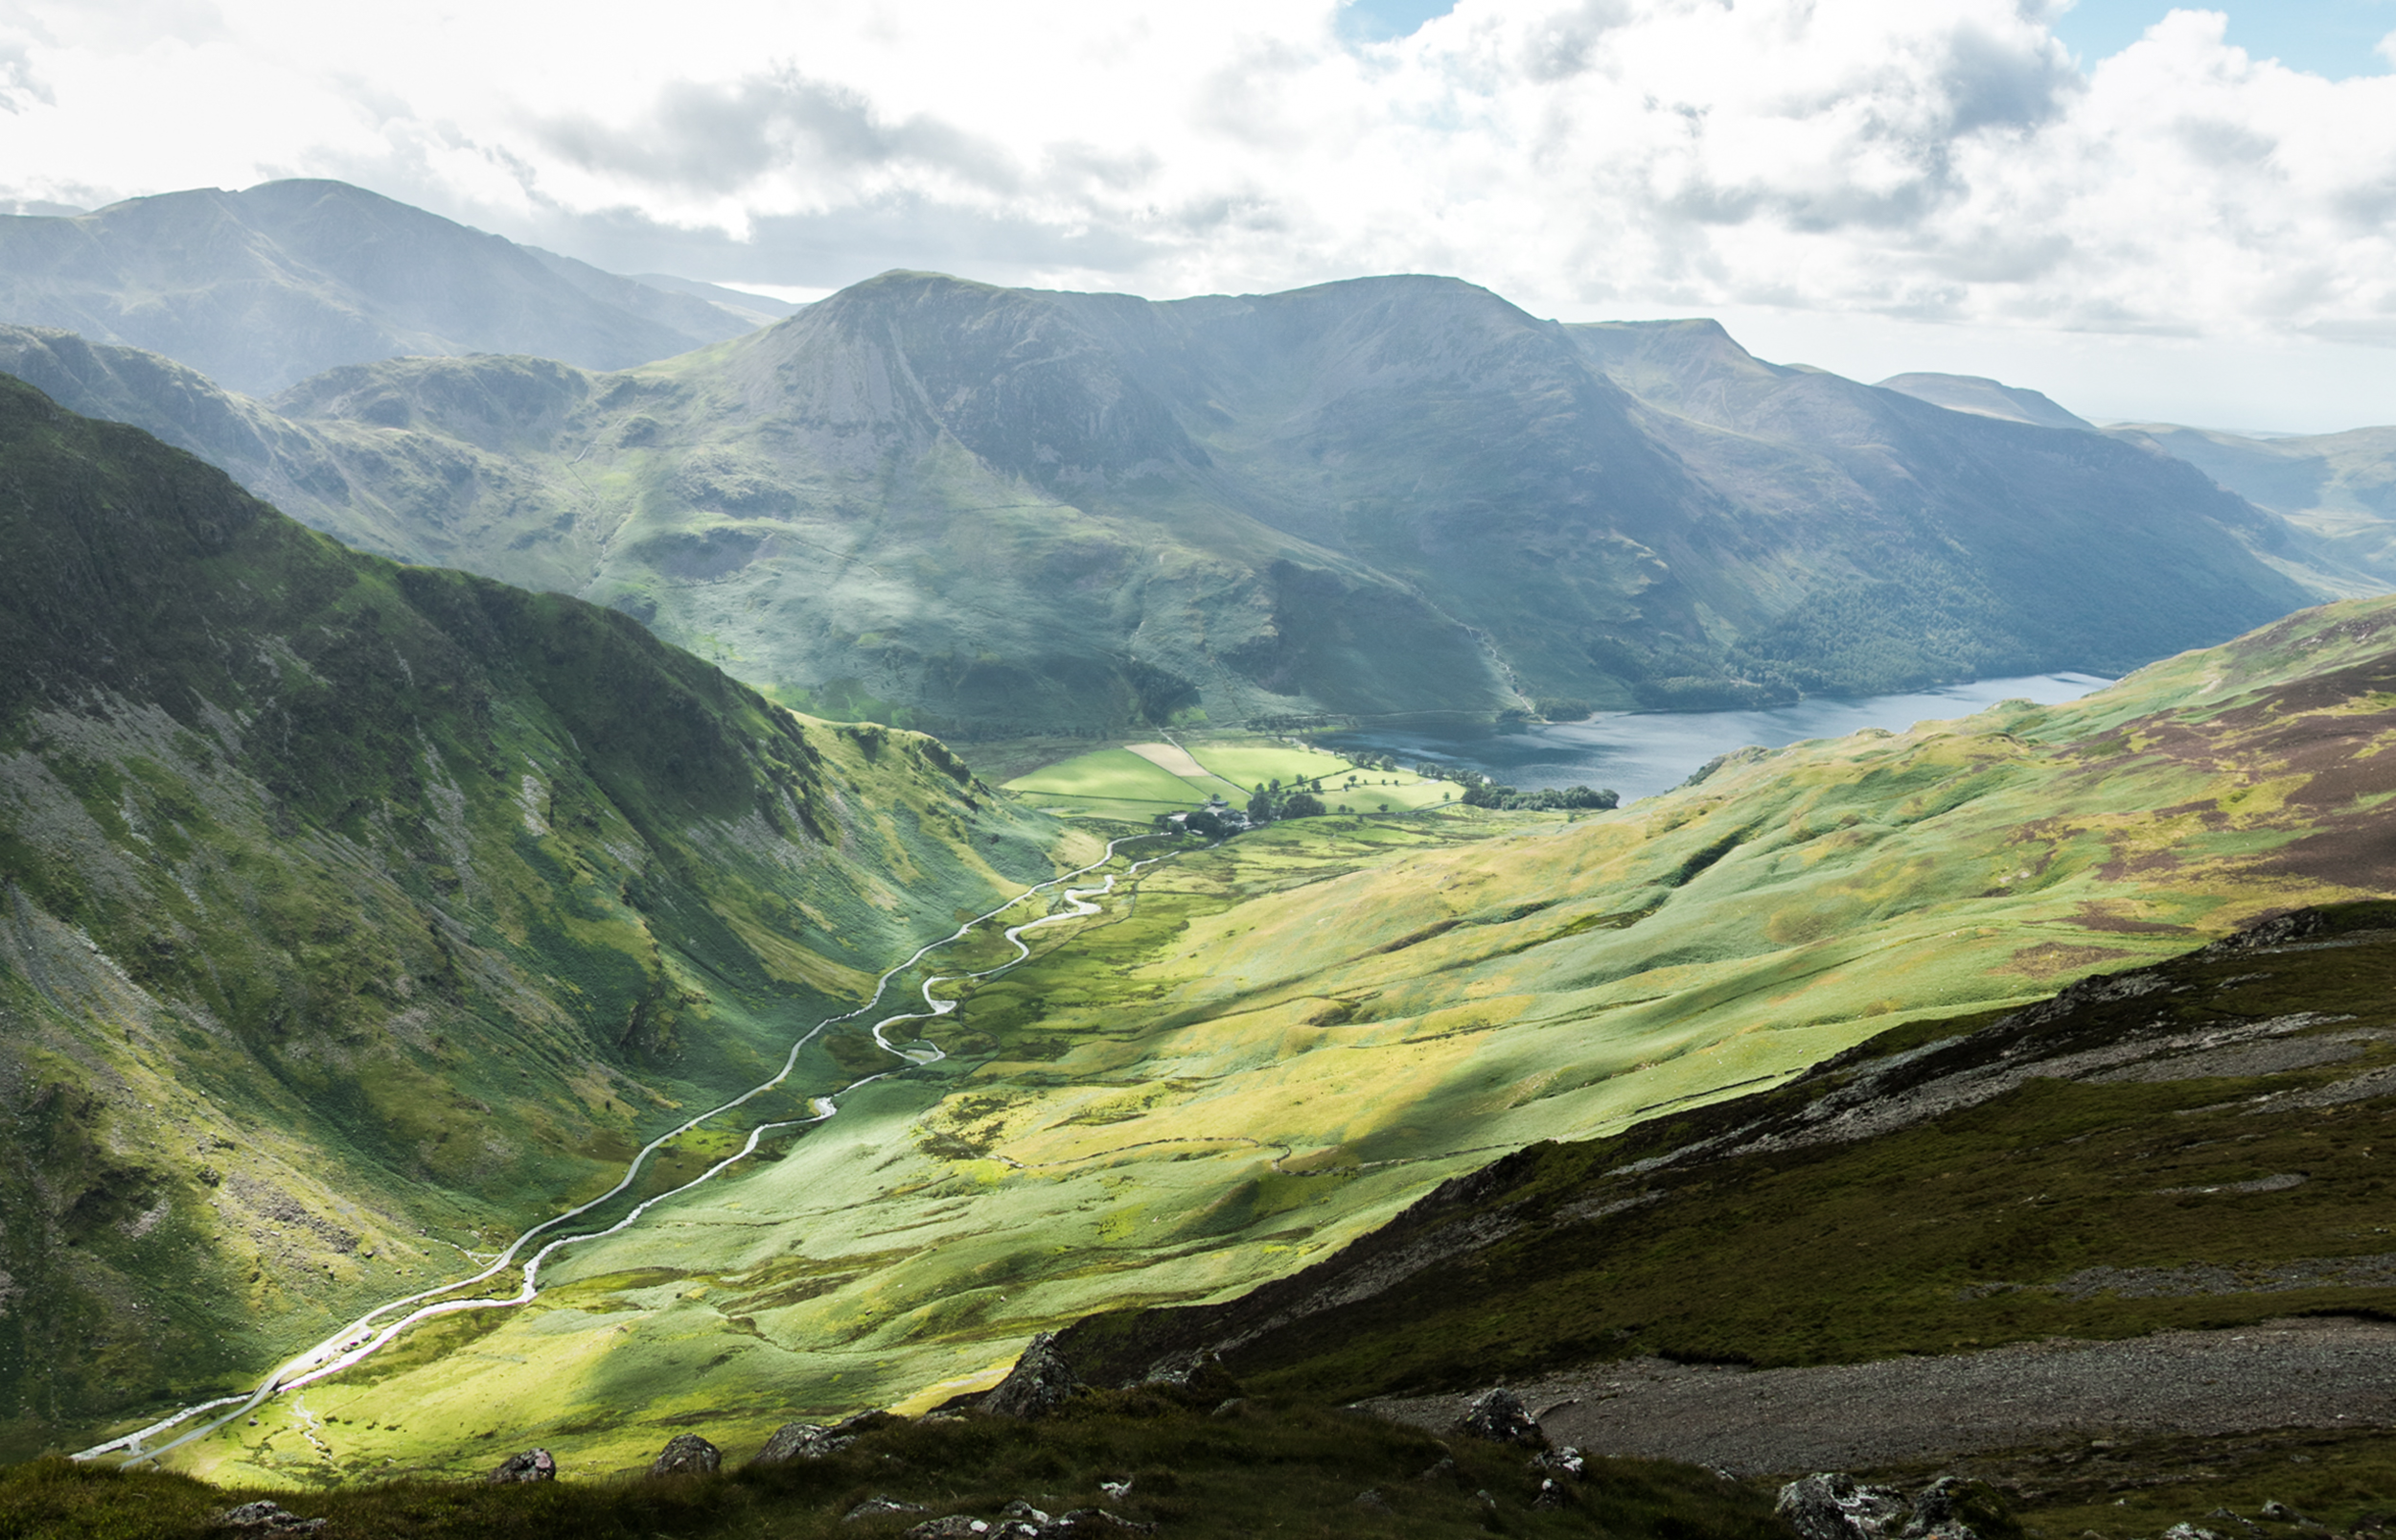 Breca Buttermere - - 10/11th August 2019- 43km full course, 19km sprint courseGet ready for: Technical running, massive elevation, stunning location, steepest climb in swimrun, fell running, great post-race party location. The UK's first swimrun race and Breca's flagship event.